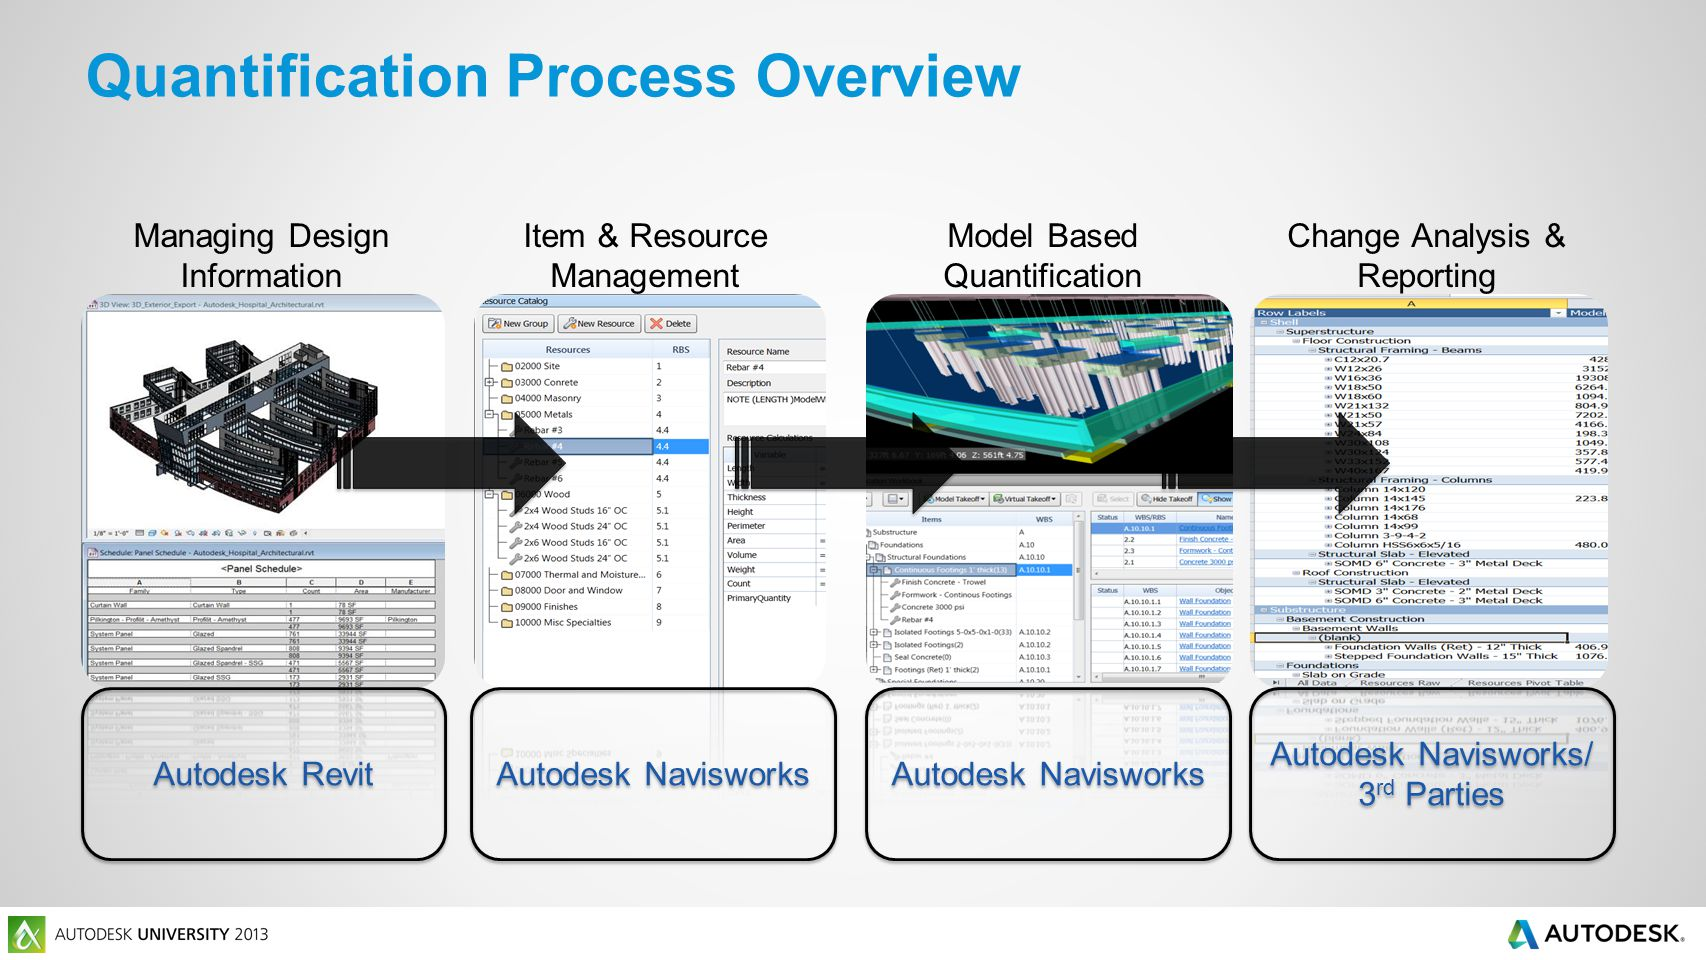 Quantification Process Overview Managing Design Information Autodesk Revit Item & Resource Management Autodesk Navisworks Model Based Quantification Autodesk Navisworks Change Analysis & Reporting Autodesk Navisworks/ 3 rd Parties Autodesk Navisworks/ 3 rd Parties